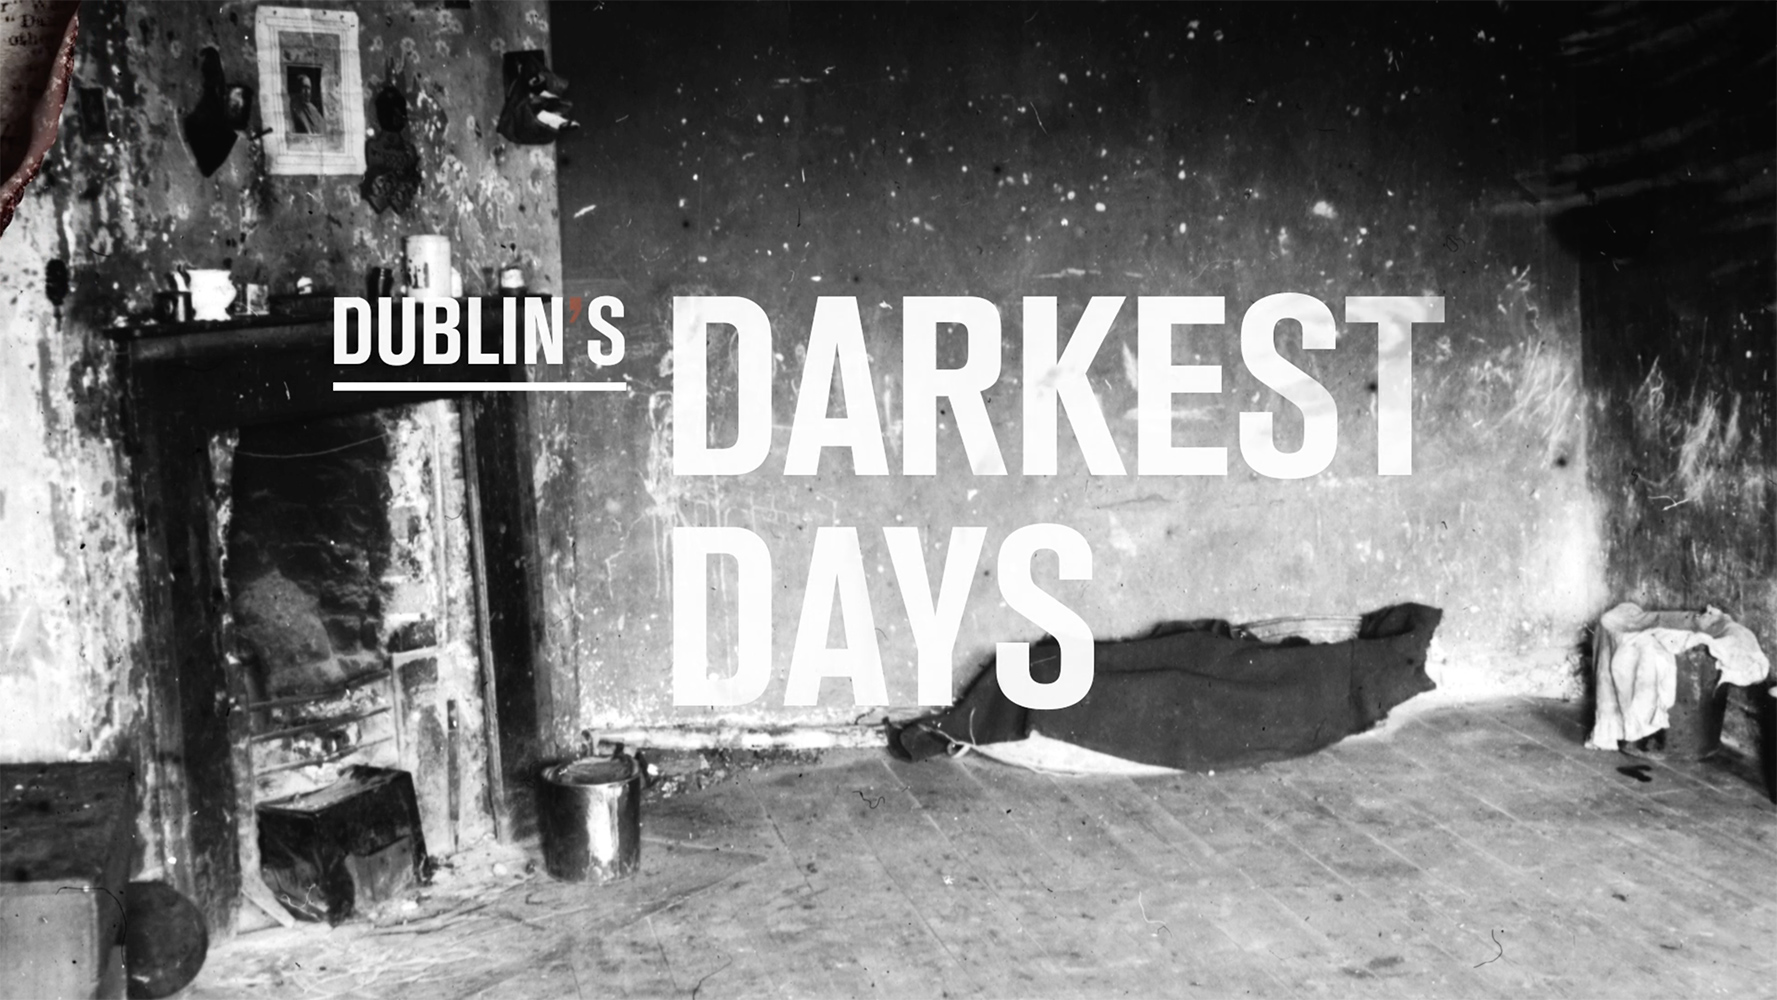 Cover image: Dublin's Darkest Days